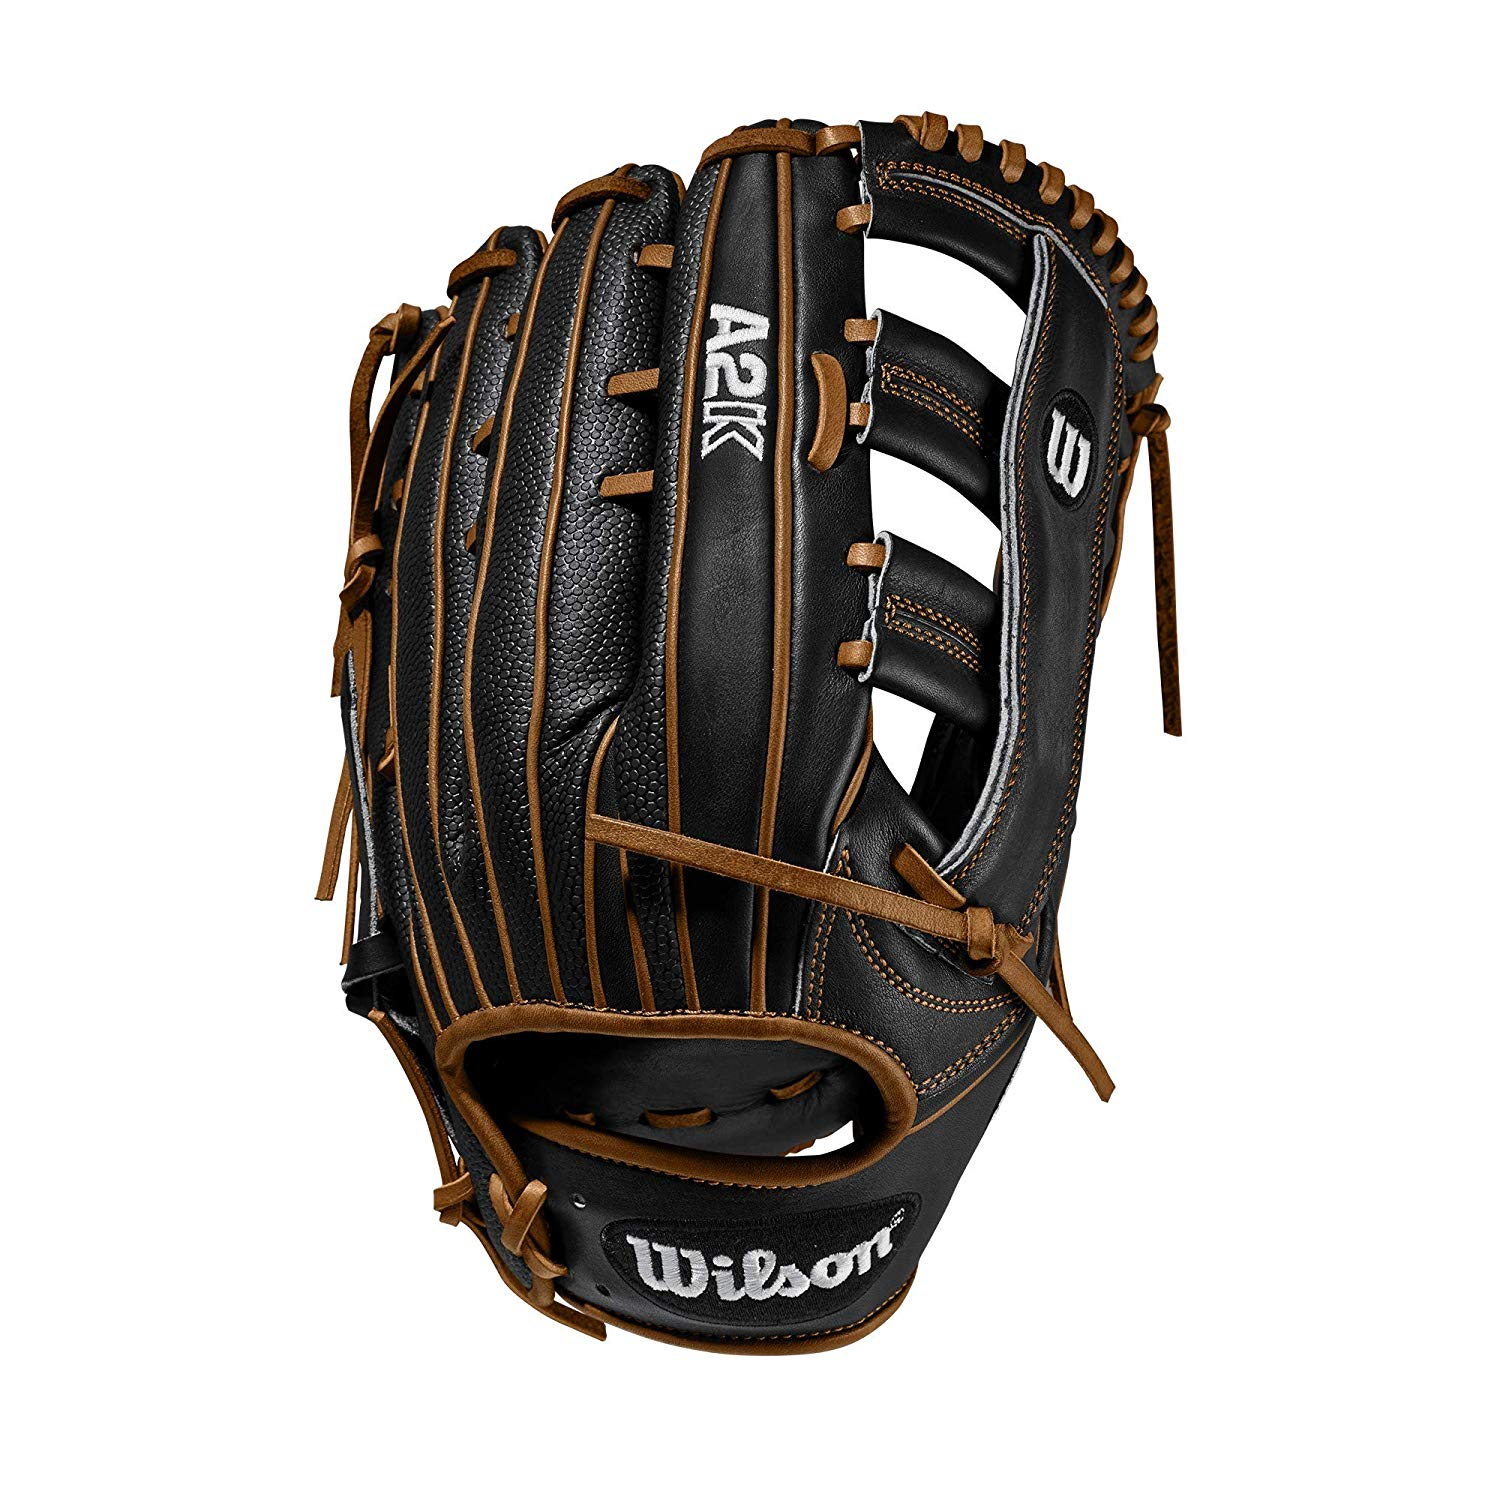 wilson-a2k-1775-12-75-baseball-glove-right-hand-throw WTA2KRB201775SS-RightHandThrow  887768815271 Wide Single Post Web and three times more shaping to help